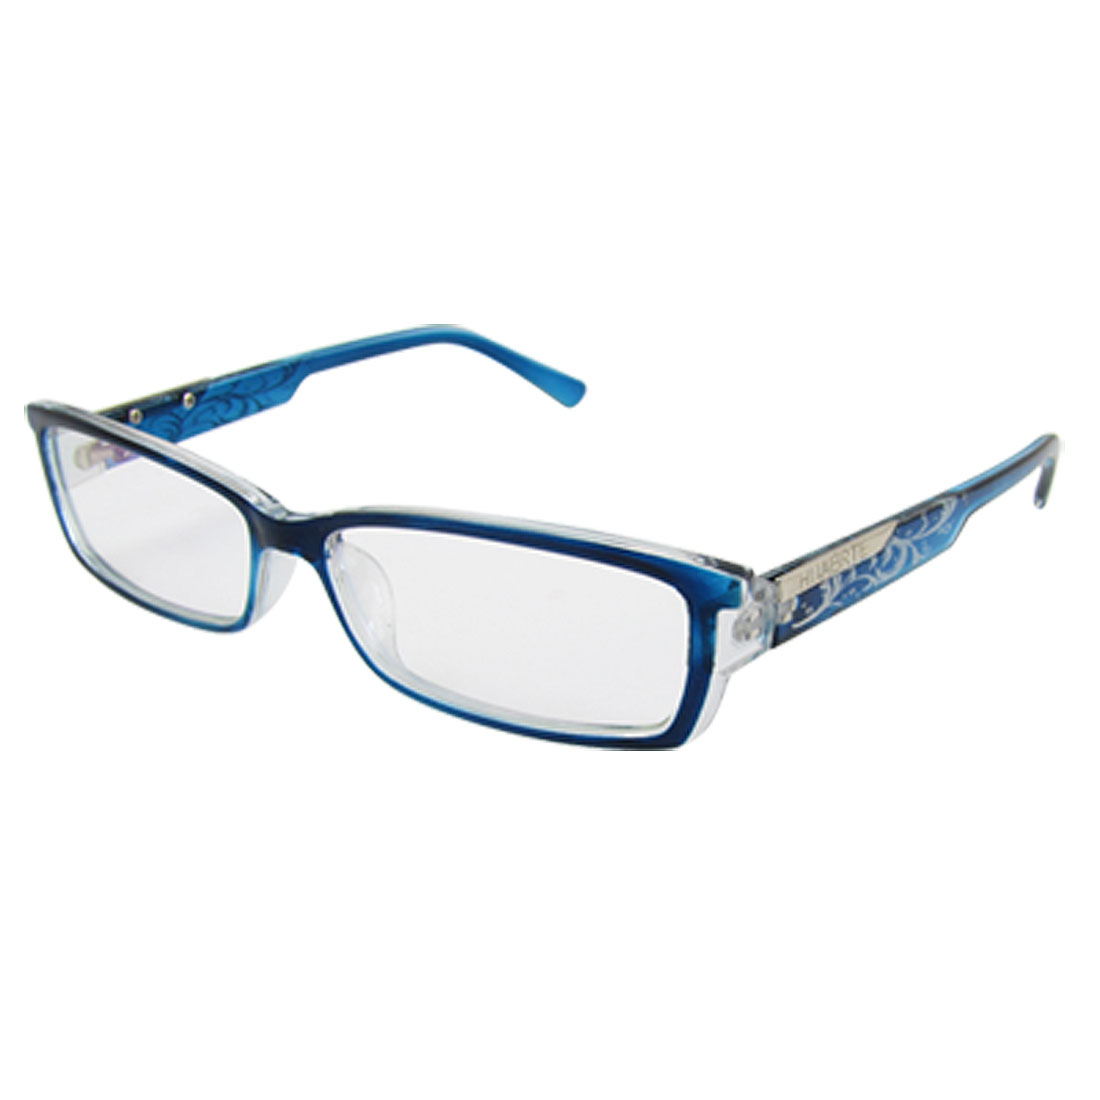 Lady Man Blue Frame Vines Patterned Plastic Arms Multi Coated Lens Plain Glasses